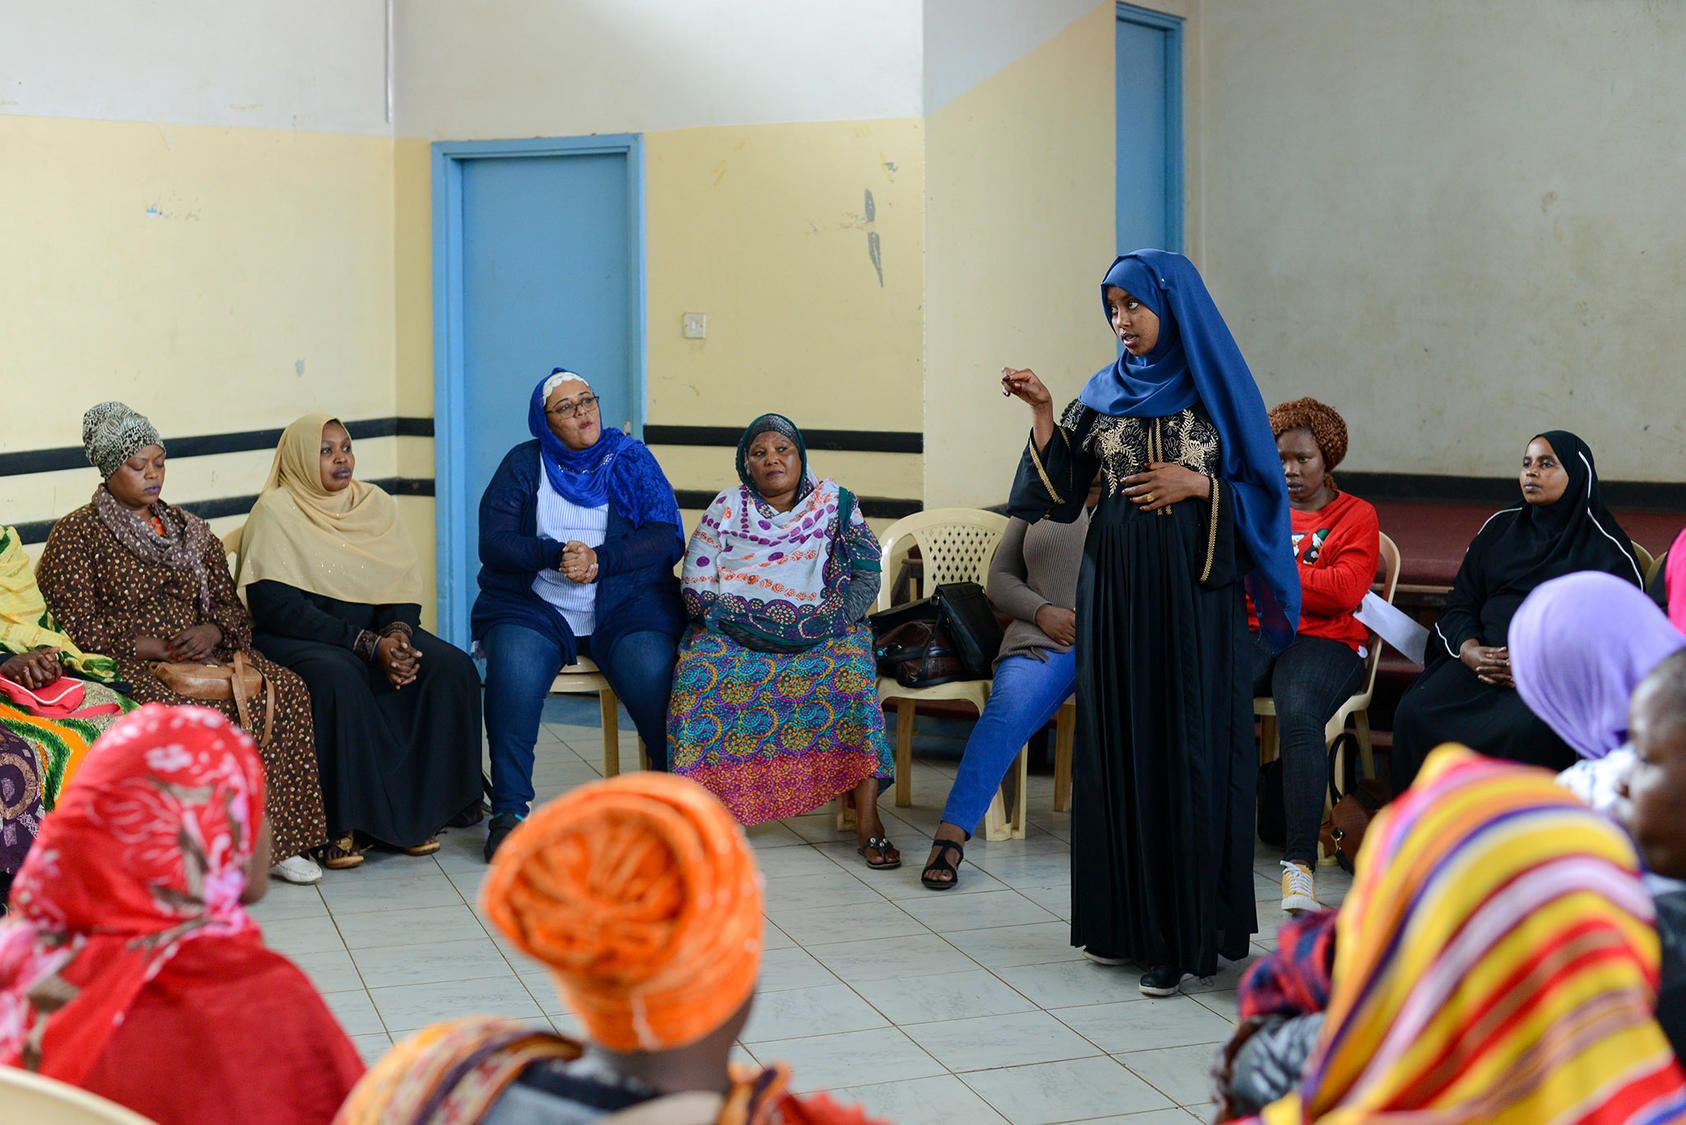 A June 2019 dialogue on preventing extremism in the Eastleigh community of Nairobi, Kenya, organized by the Sisters Without Borders network, USIP's partner for the Women Preventing Violent Extremism–Horn of Africa project. (Steven Ruder/USIP)